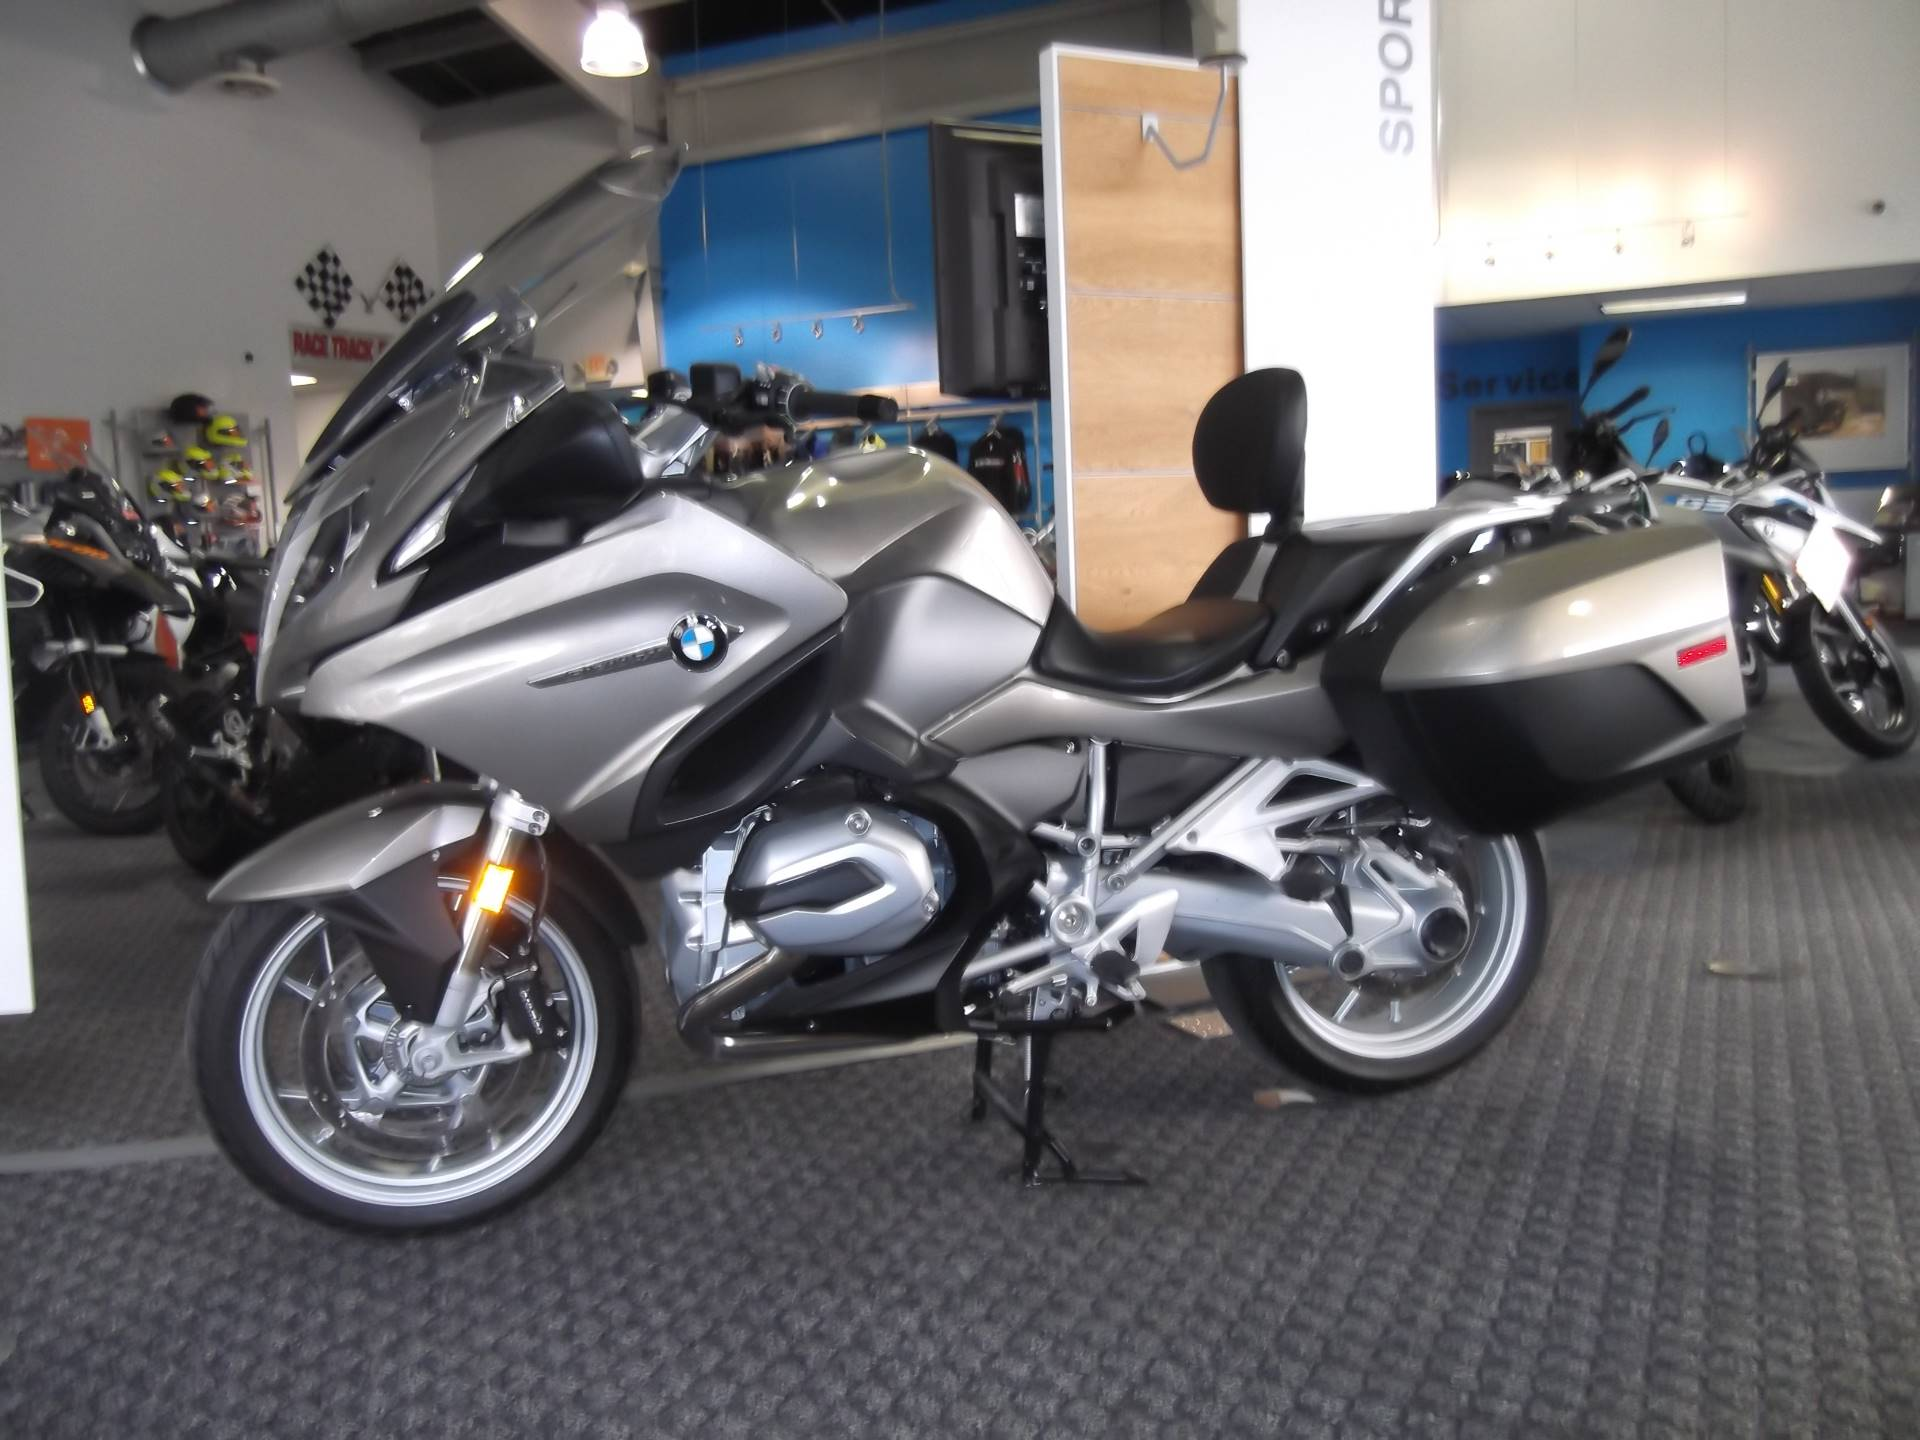 2016 BMW R1200RT Supersport Touring Bike in Boerne, Texas